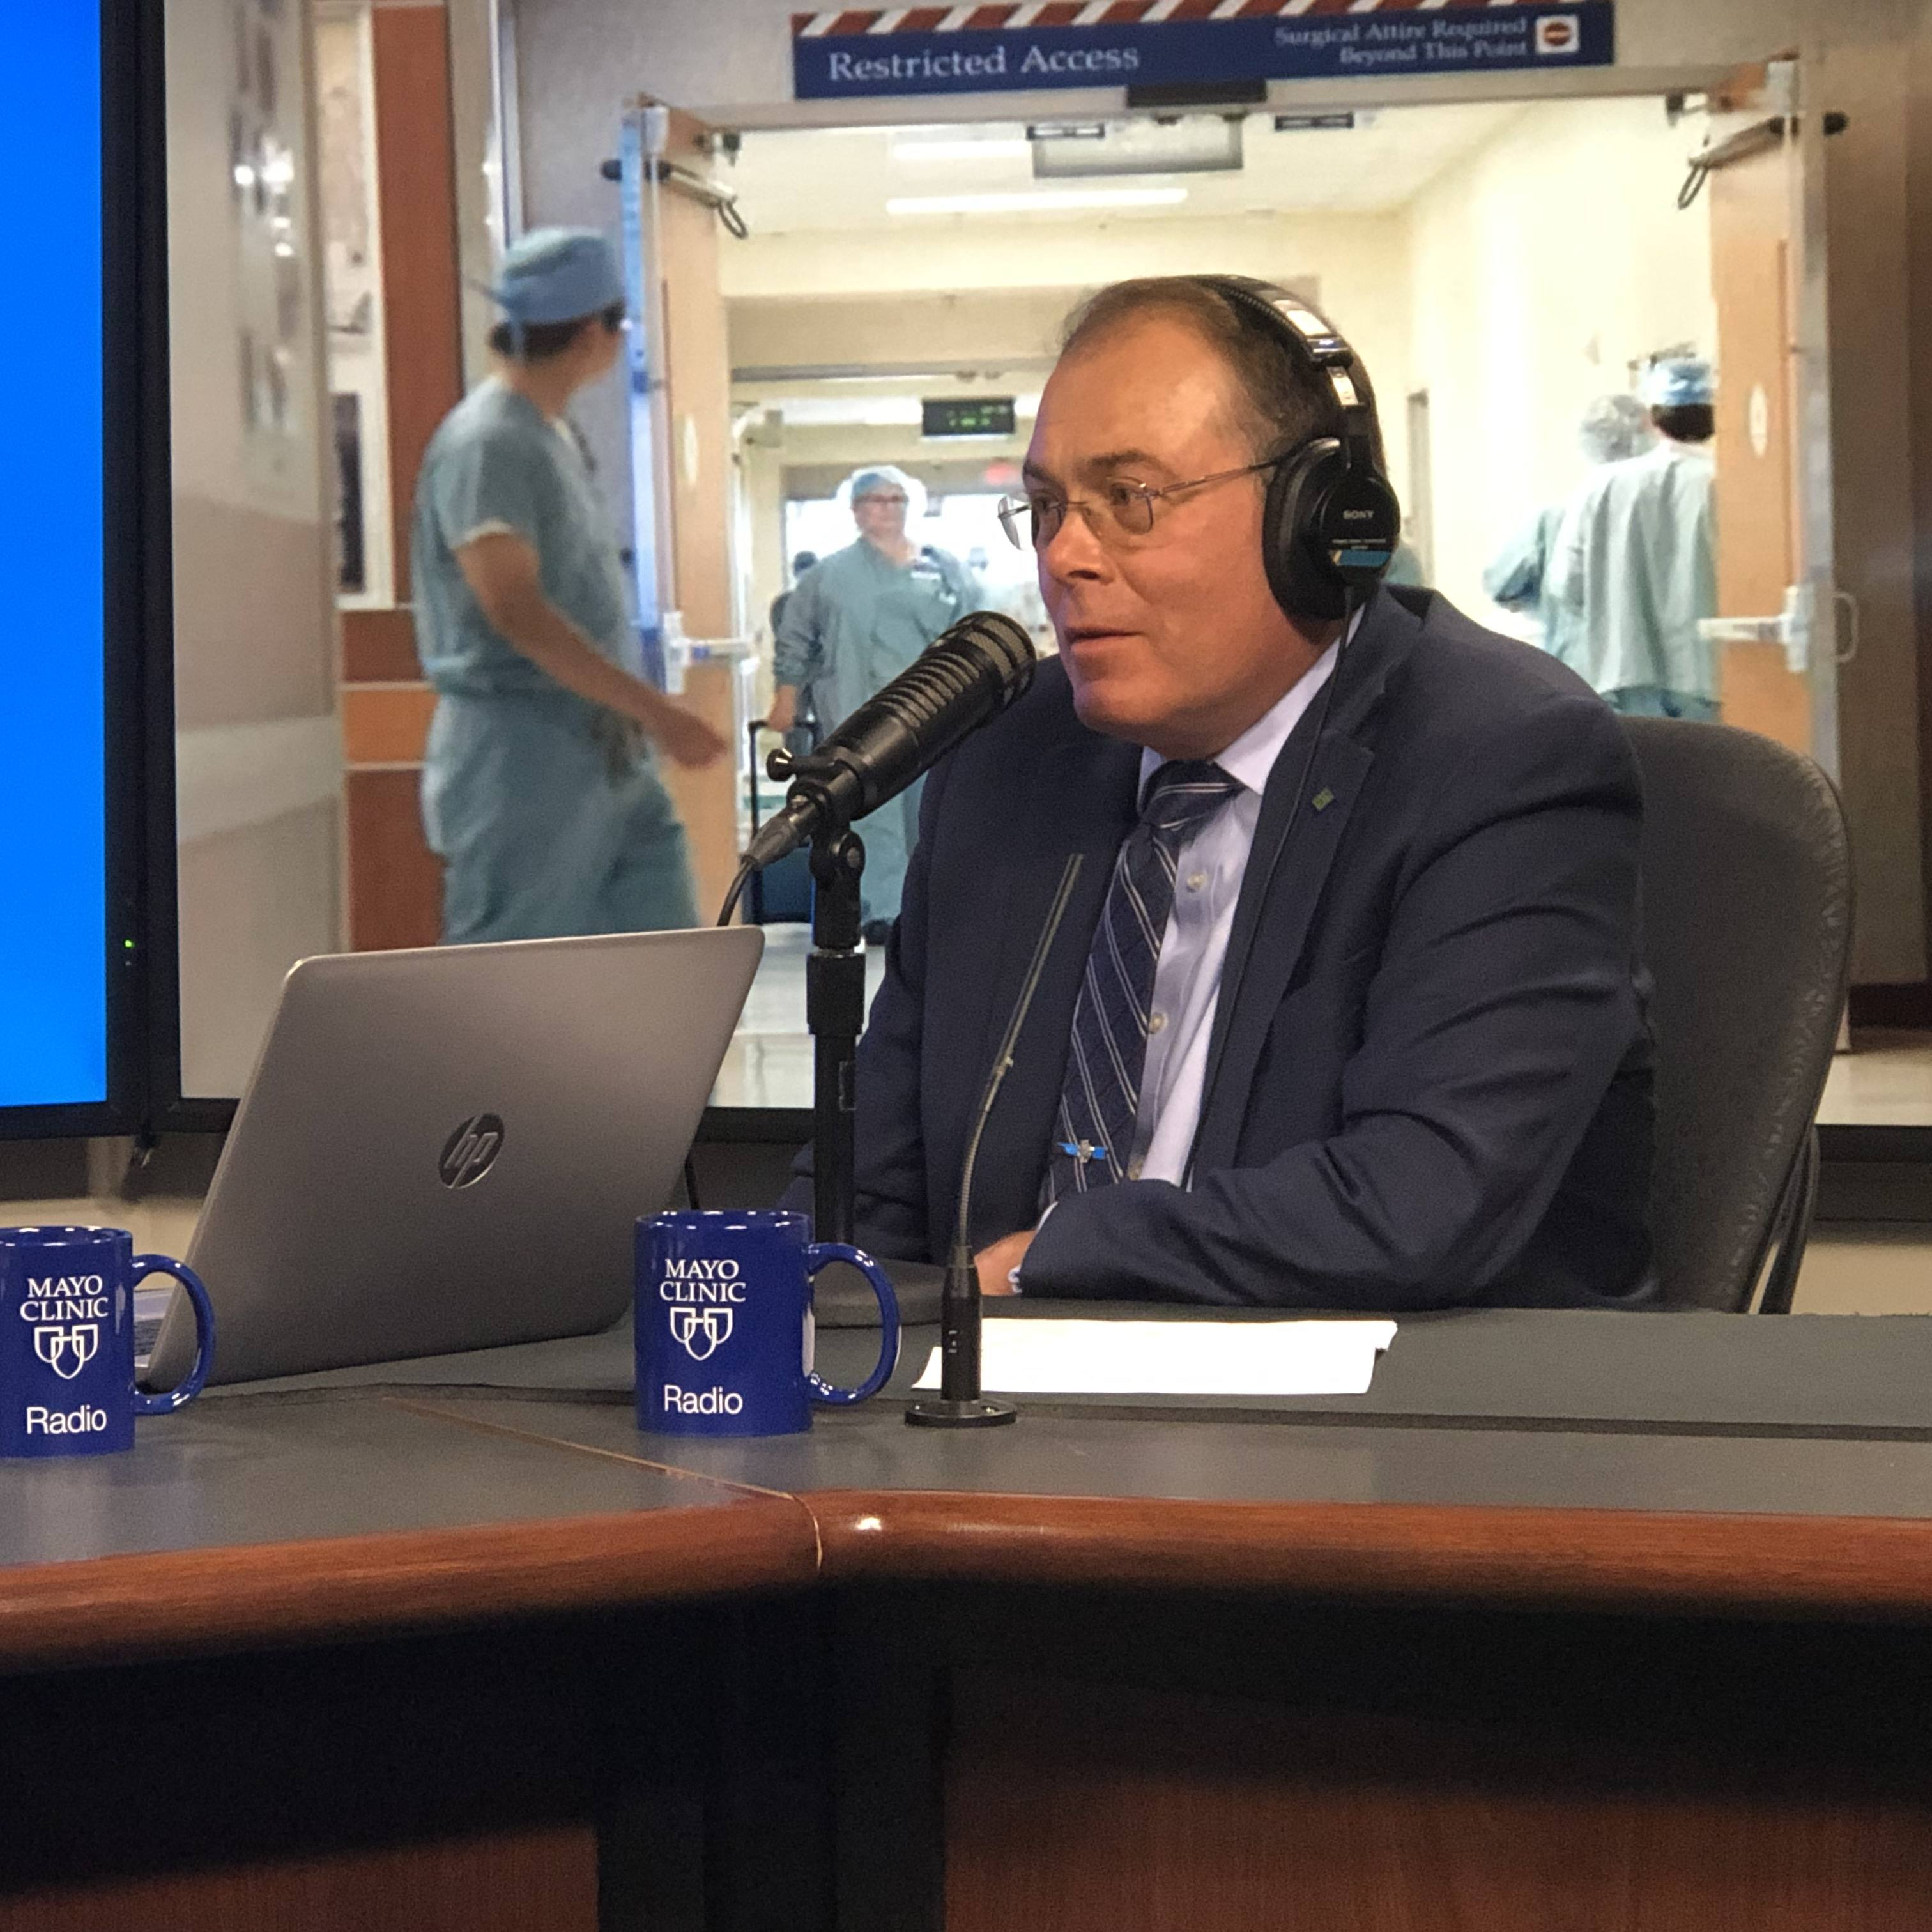 Dr. Charles Rosen being interviewed on Mayo Clinic Radio